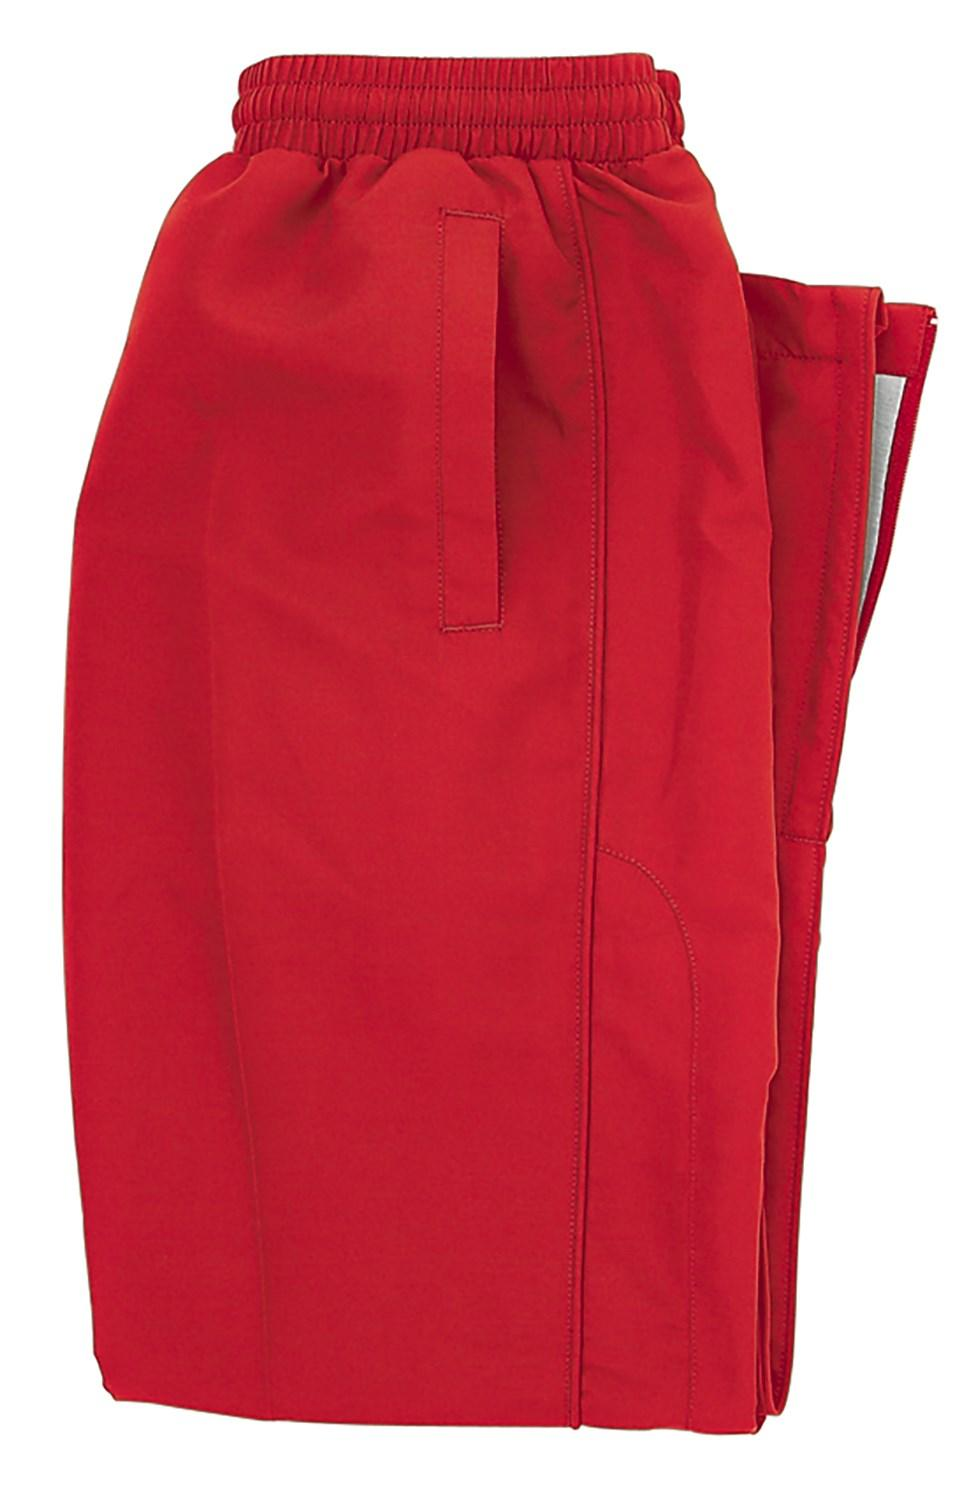 Splice Unisex Track Bottoms - Red Only